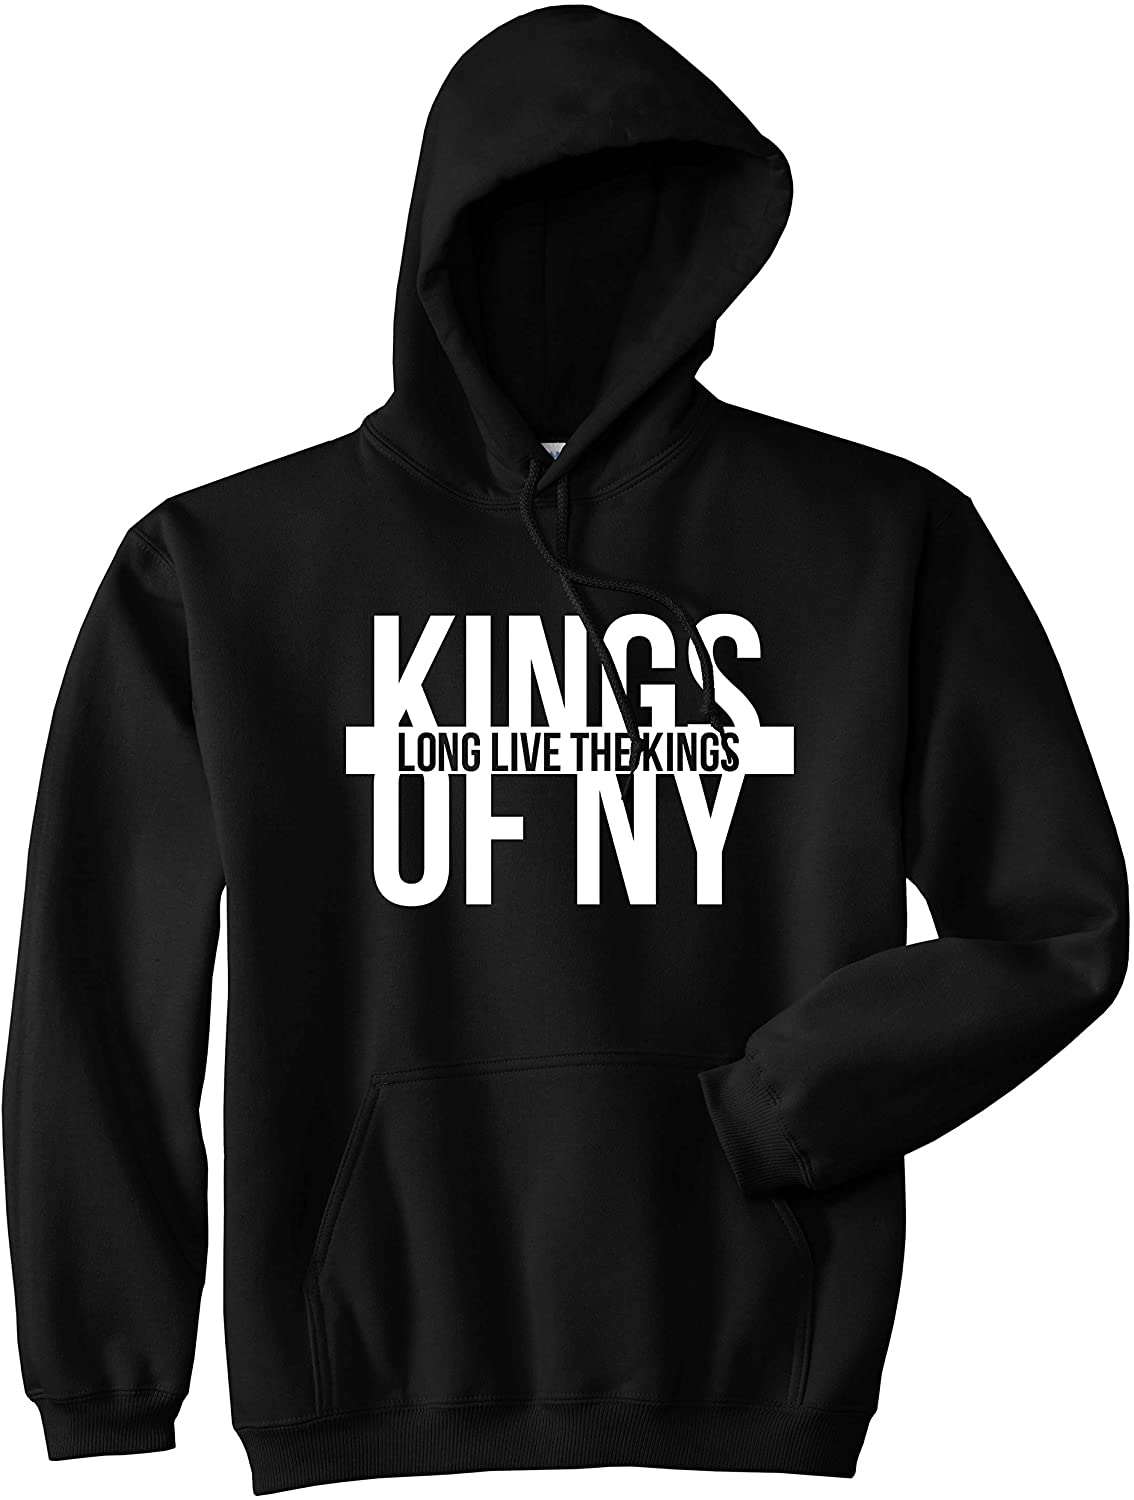 Kings Of NY Long Live The King New York LA DC SF Pullover Hoody Sweatshirt